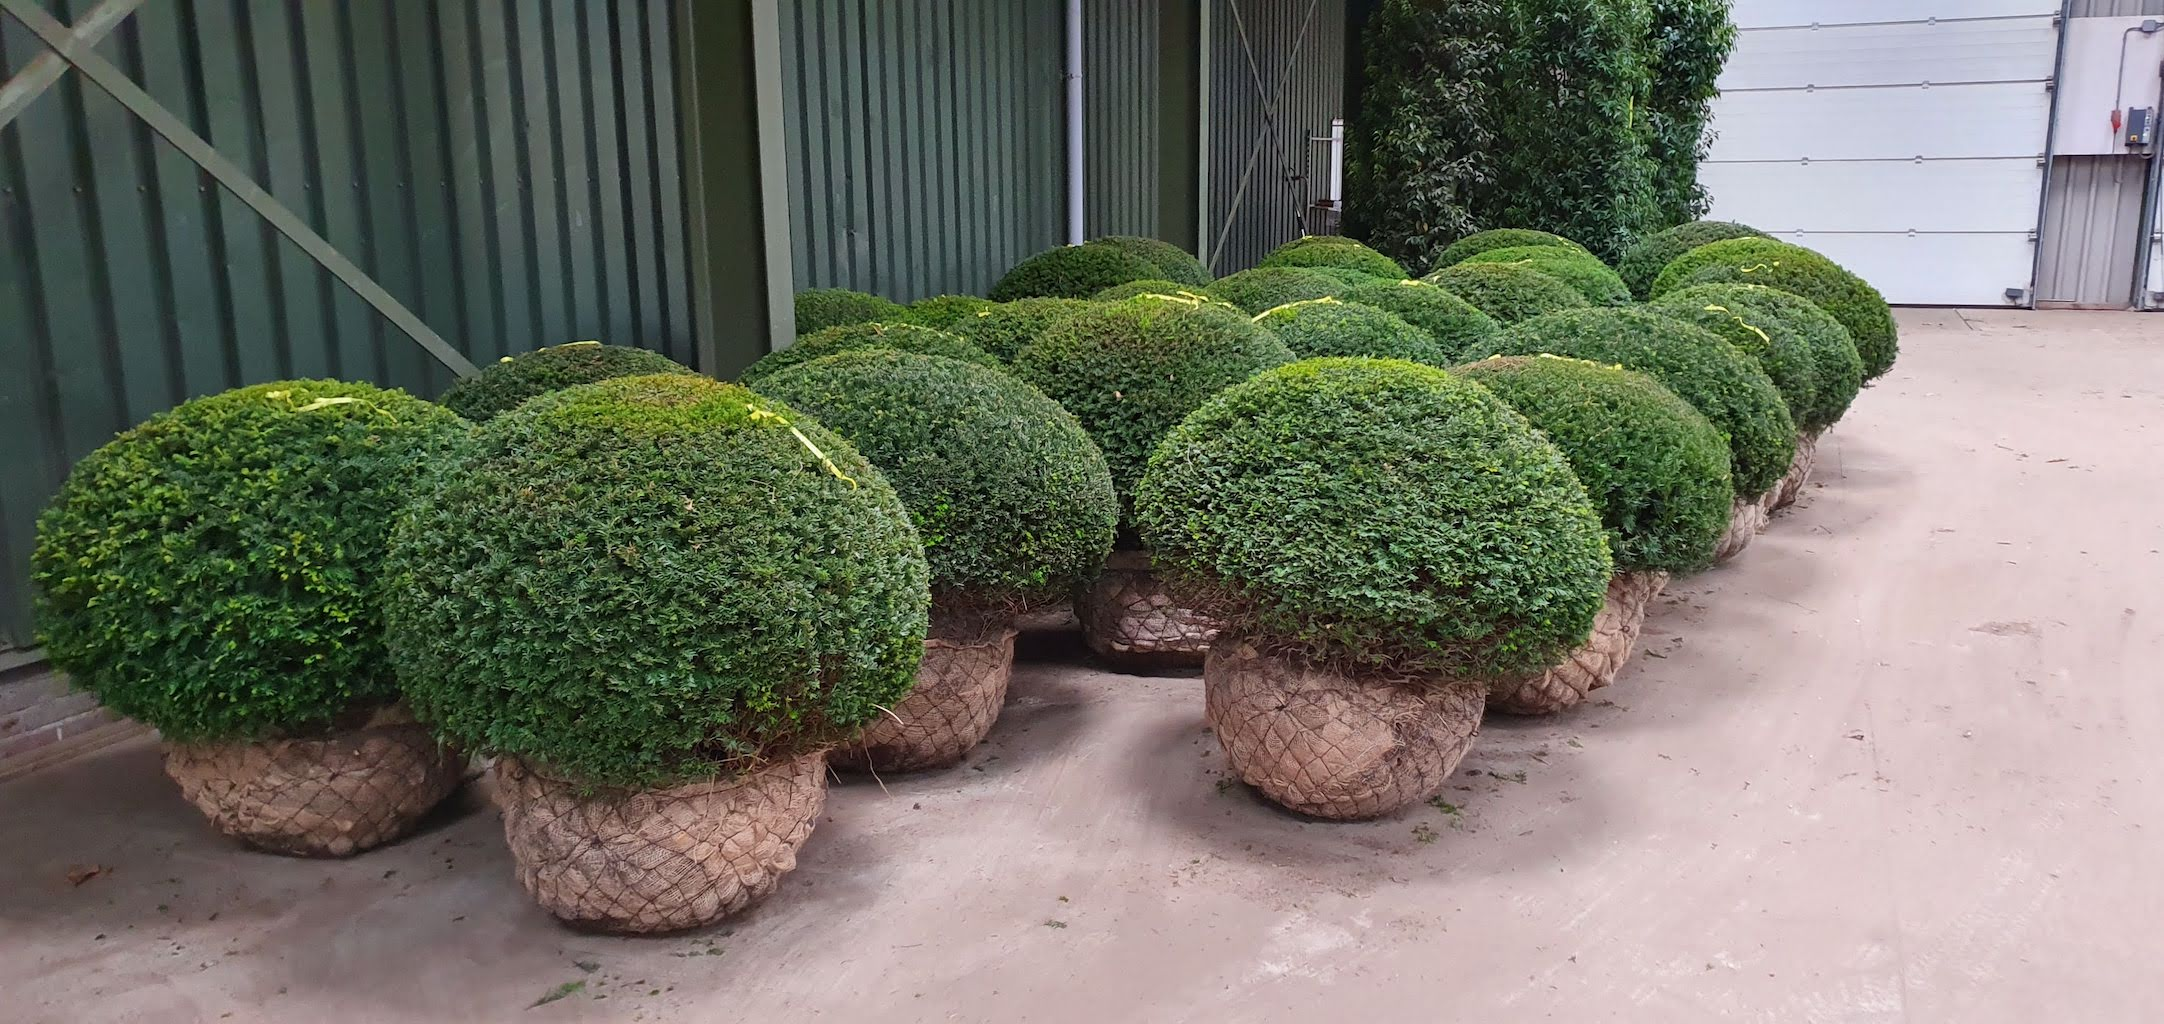 Taxus baccata extra large Yew topiary balls with root-balls